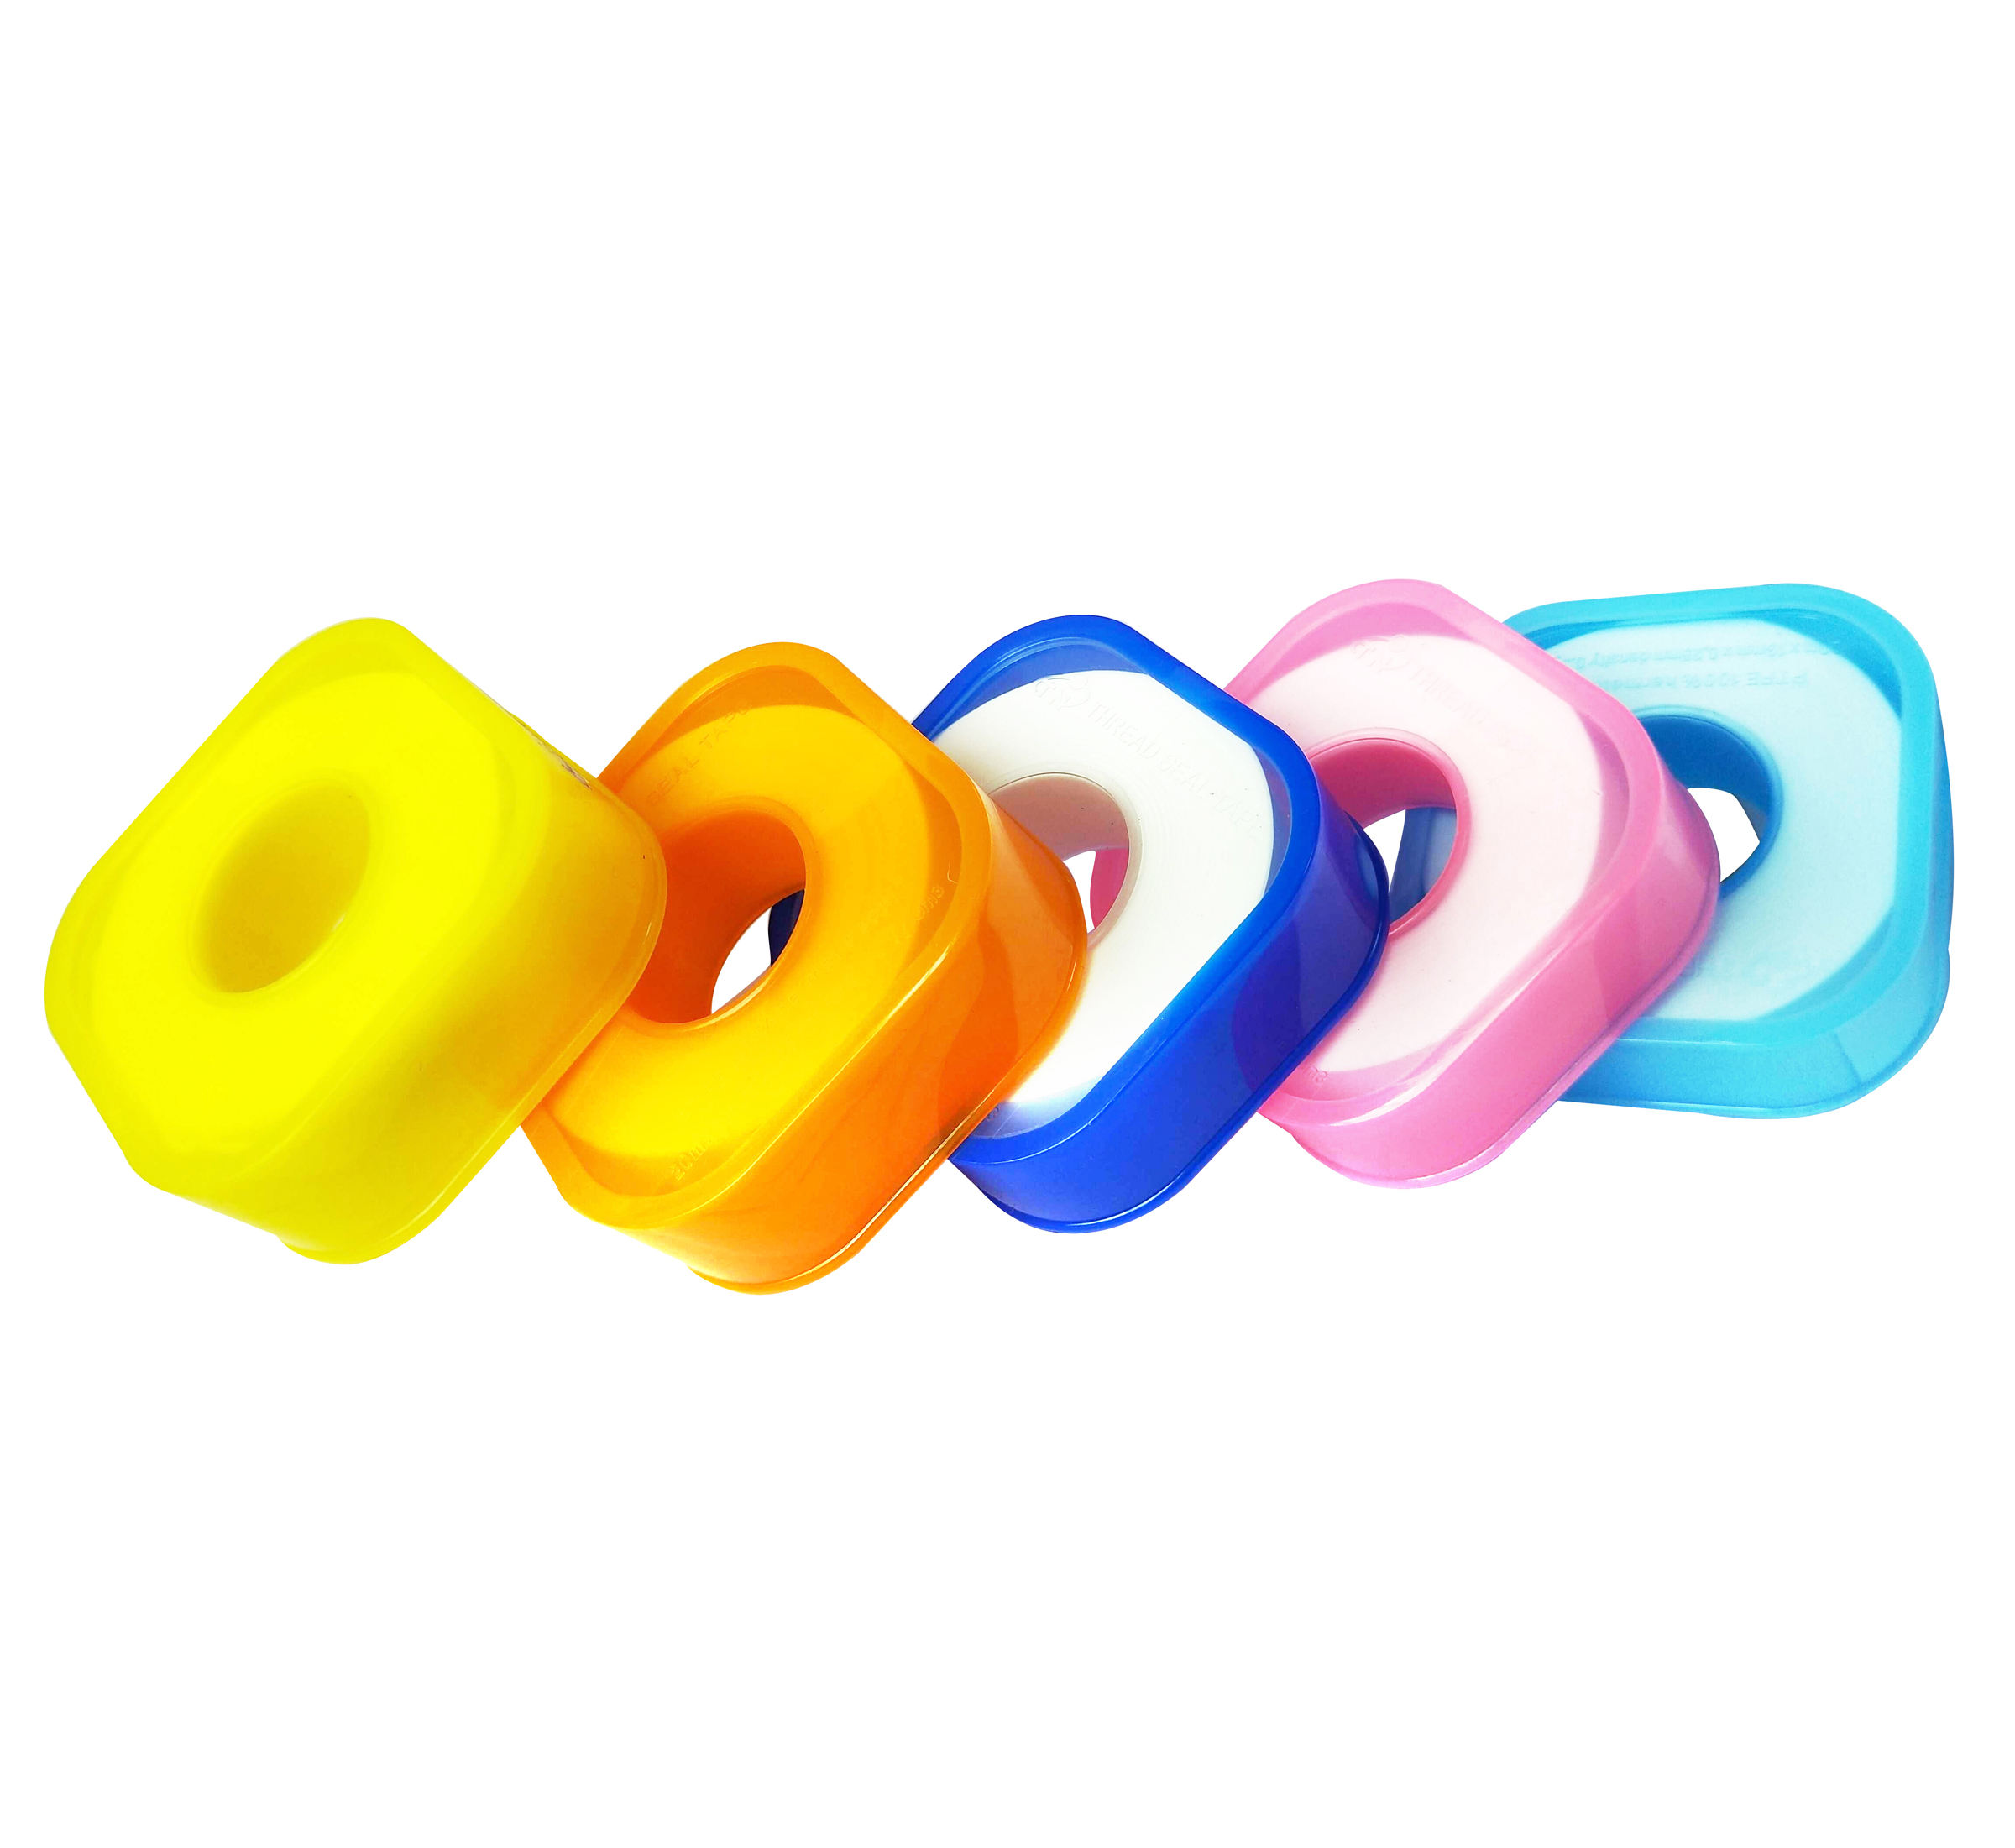 Taflon Seal Tape 0.075 Mm Tebal Kepadatan Tinggi Warna Kuning Tape Gas